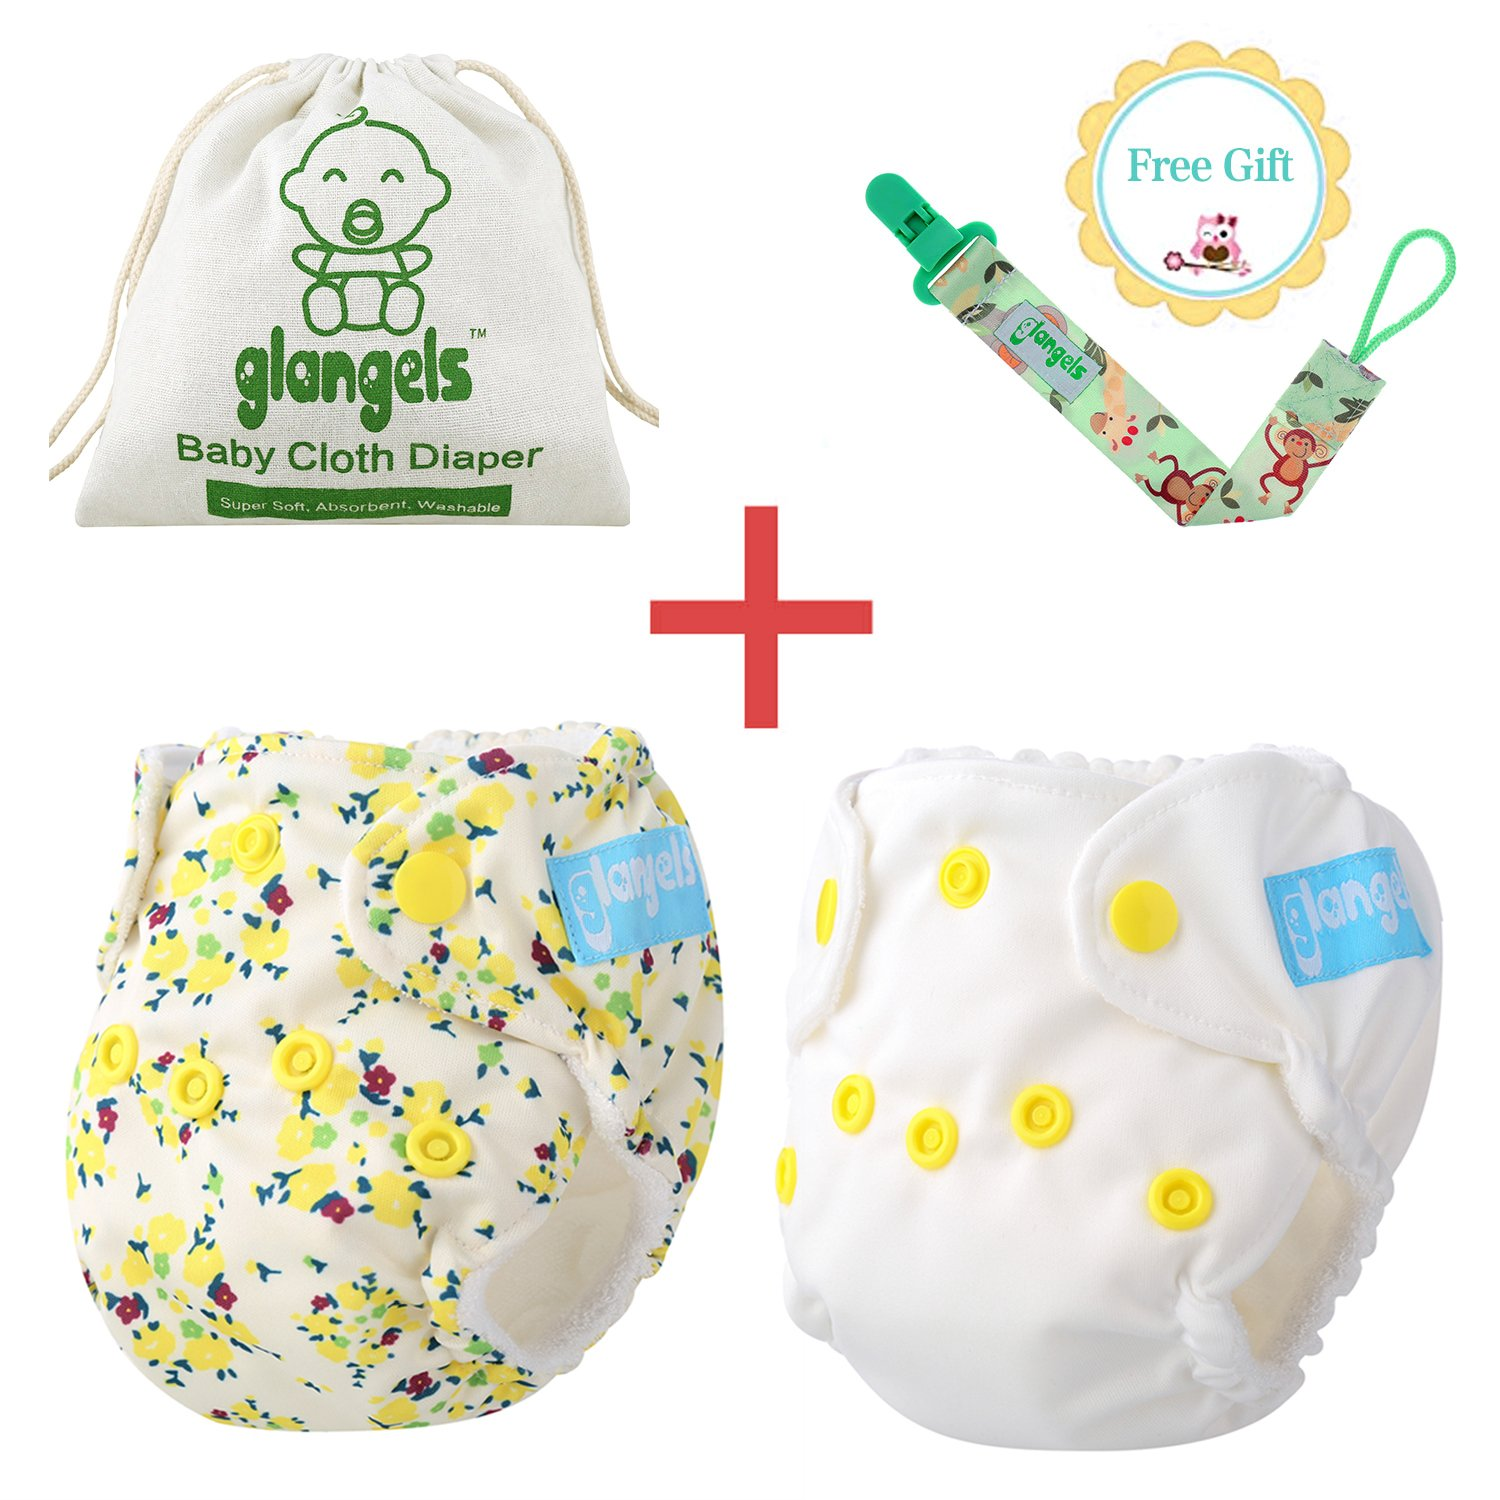 7 PCs Premium Bamboo Organic Reusable Cloth Diapers 2 Bonus Wet /& Dry Diaper Bag /& Pacifier Clip Perfect Baby Shower Gift Breathable Waterproof Cover Mixed 7 PCs For Preemie Or Newborn